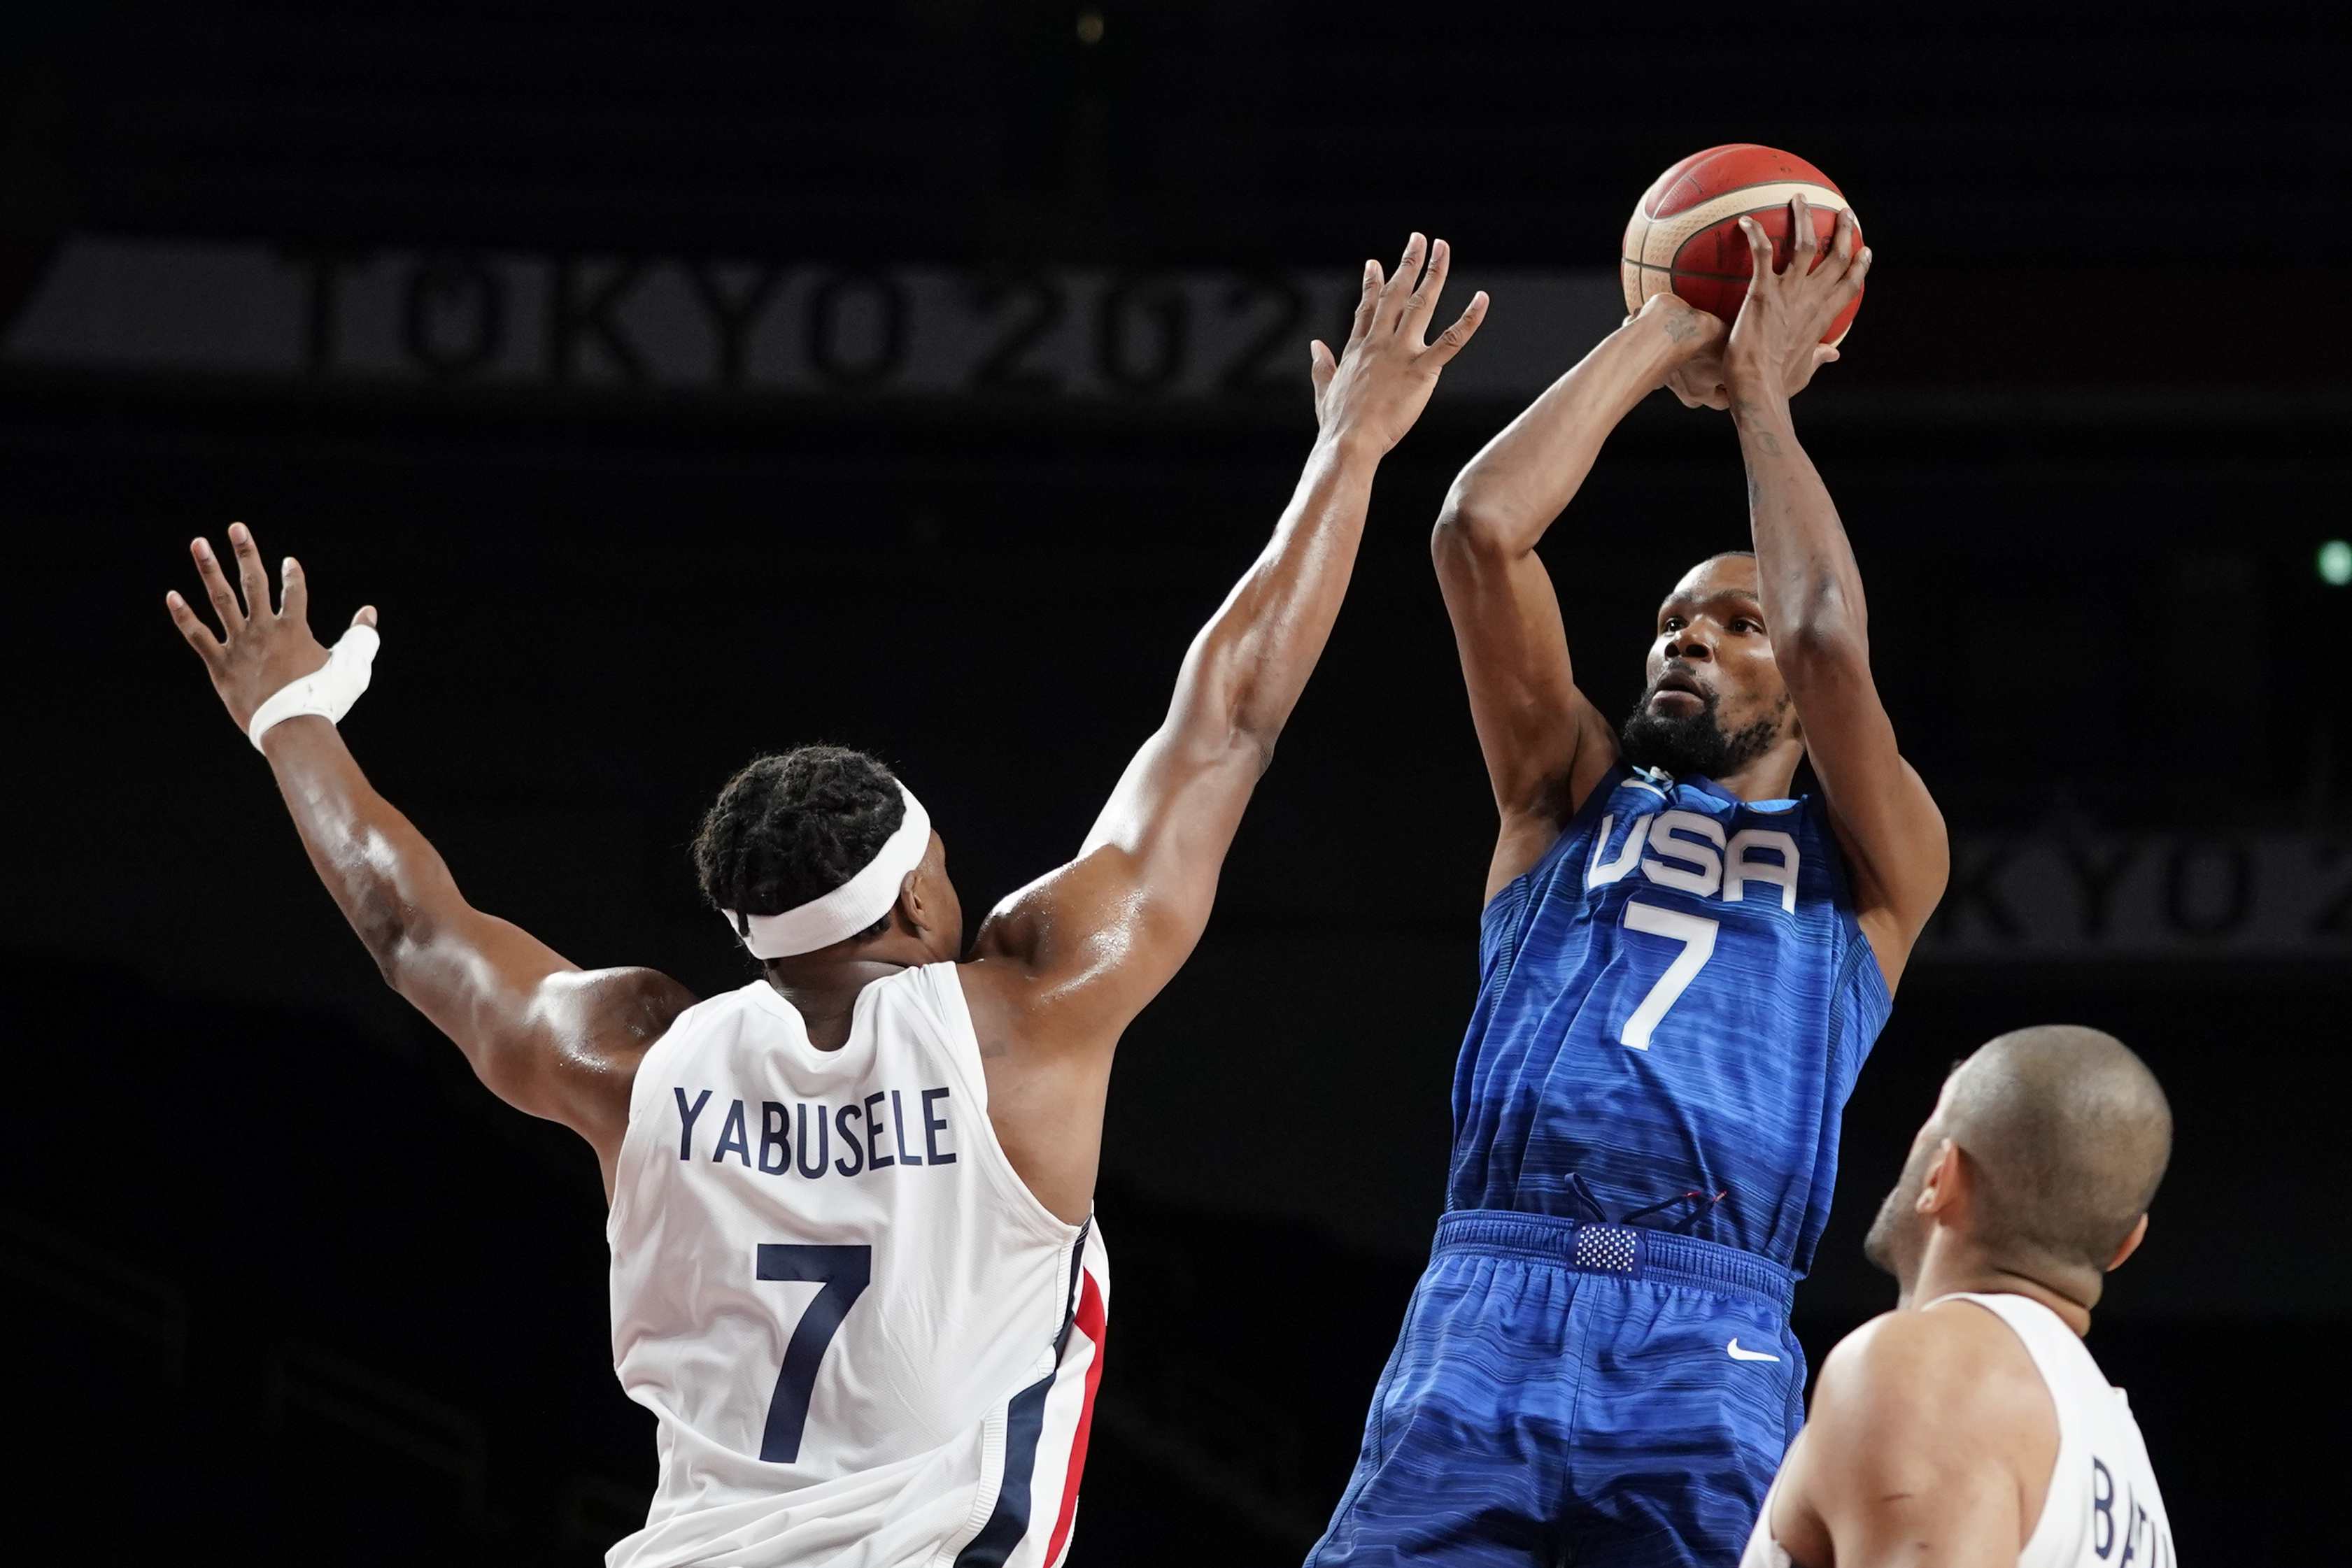 Tokyo Olympics Full TV & Streaming Schedule: How To Watch Everything From The U.S.A. Men's Basketball Elimination Game To Men's Golf Teeing Off – Updated